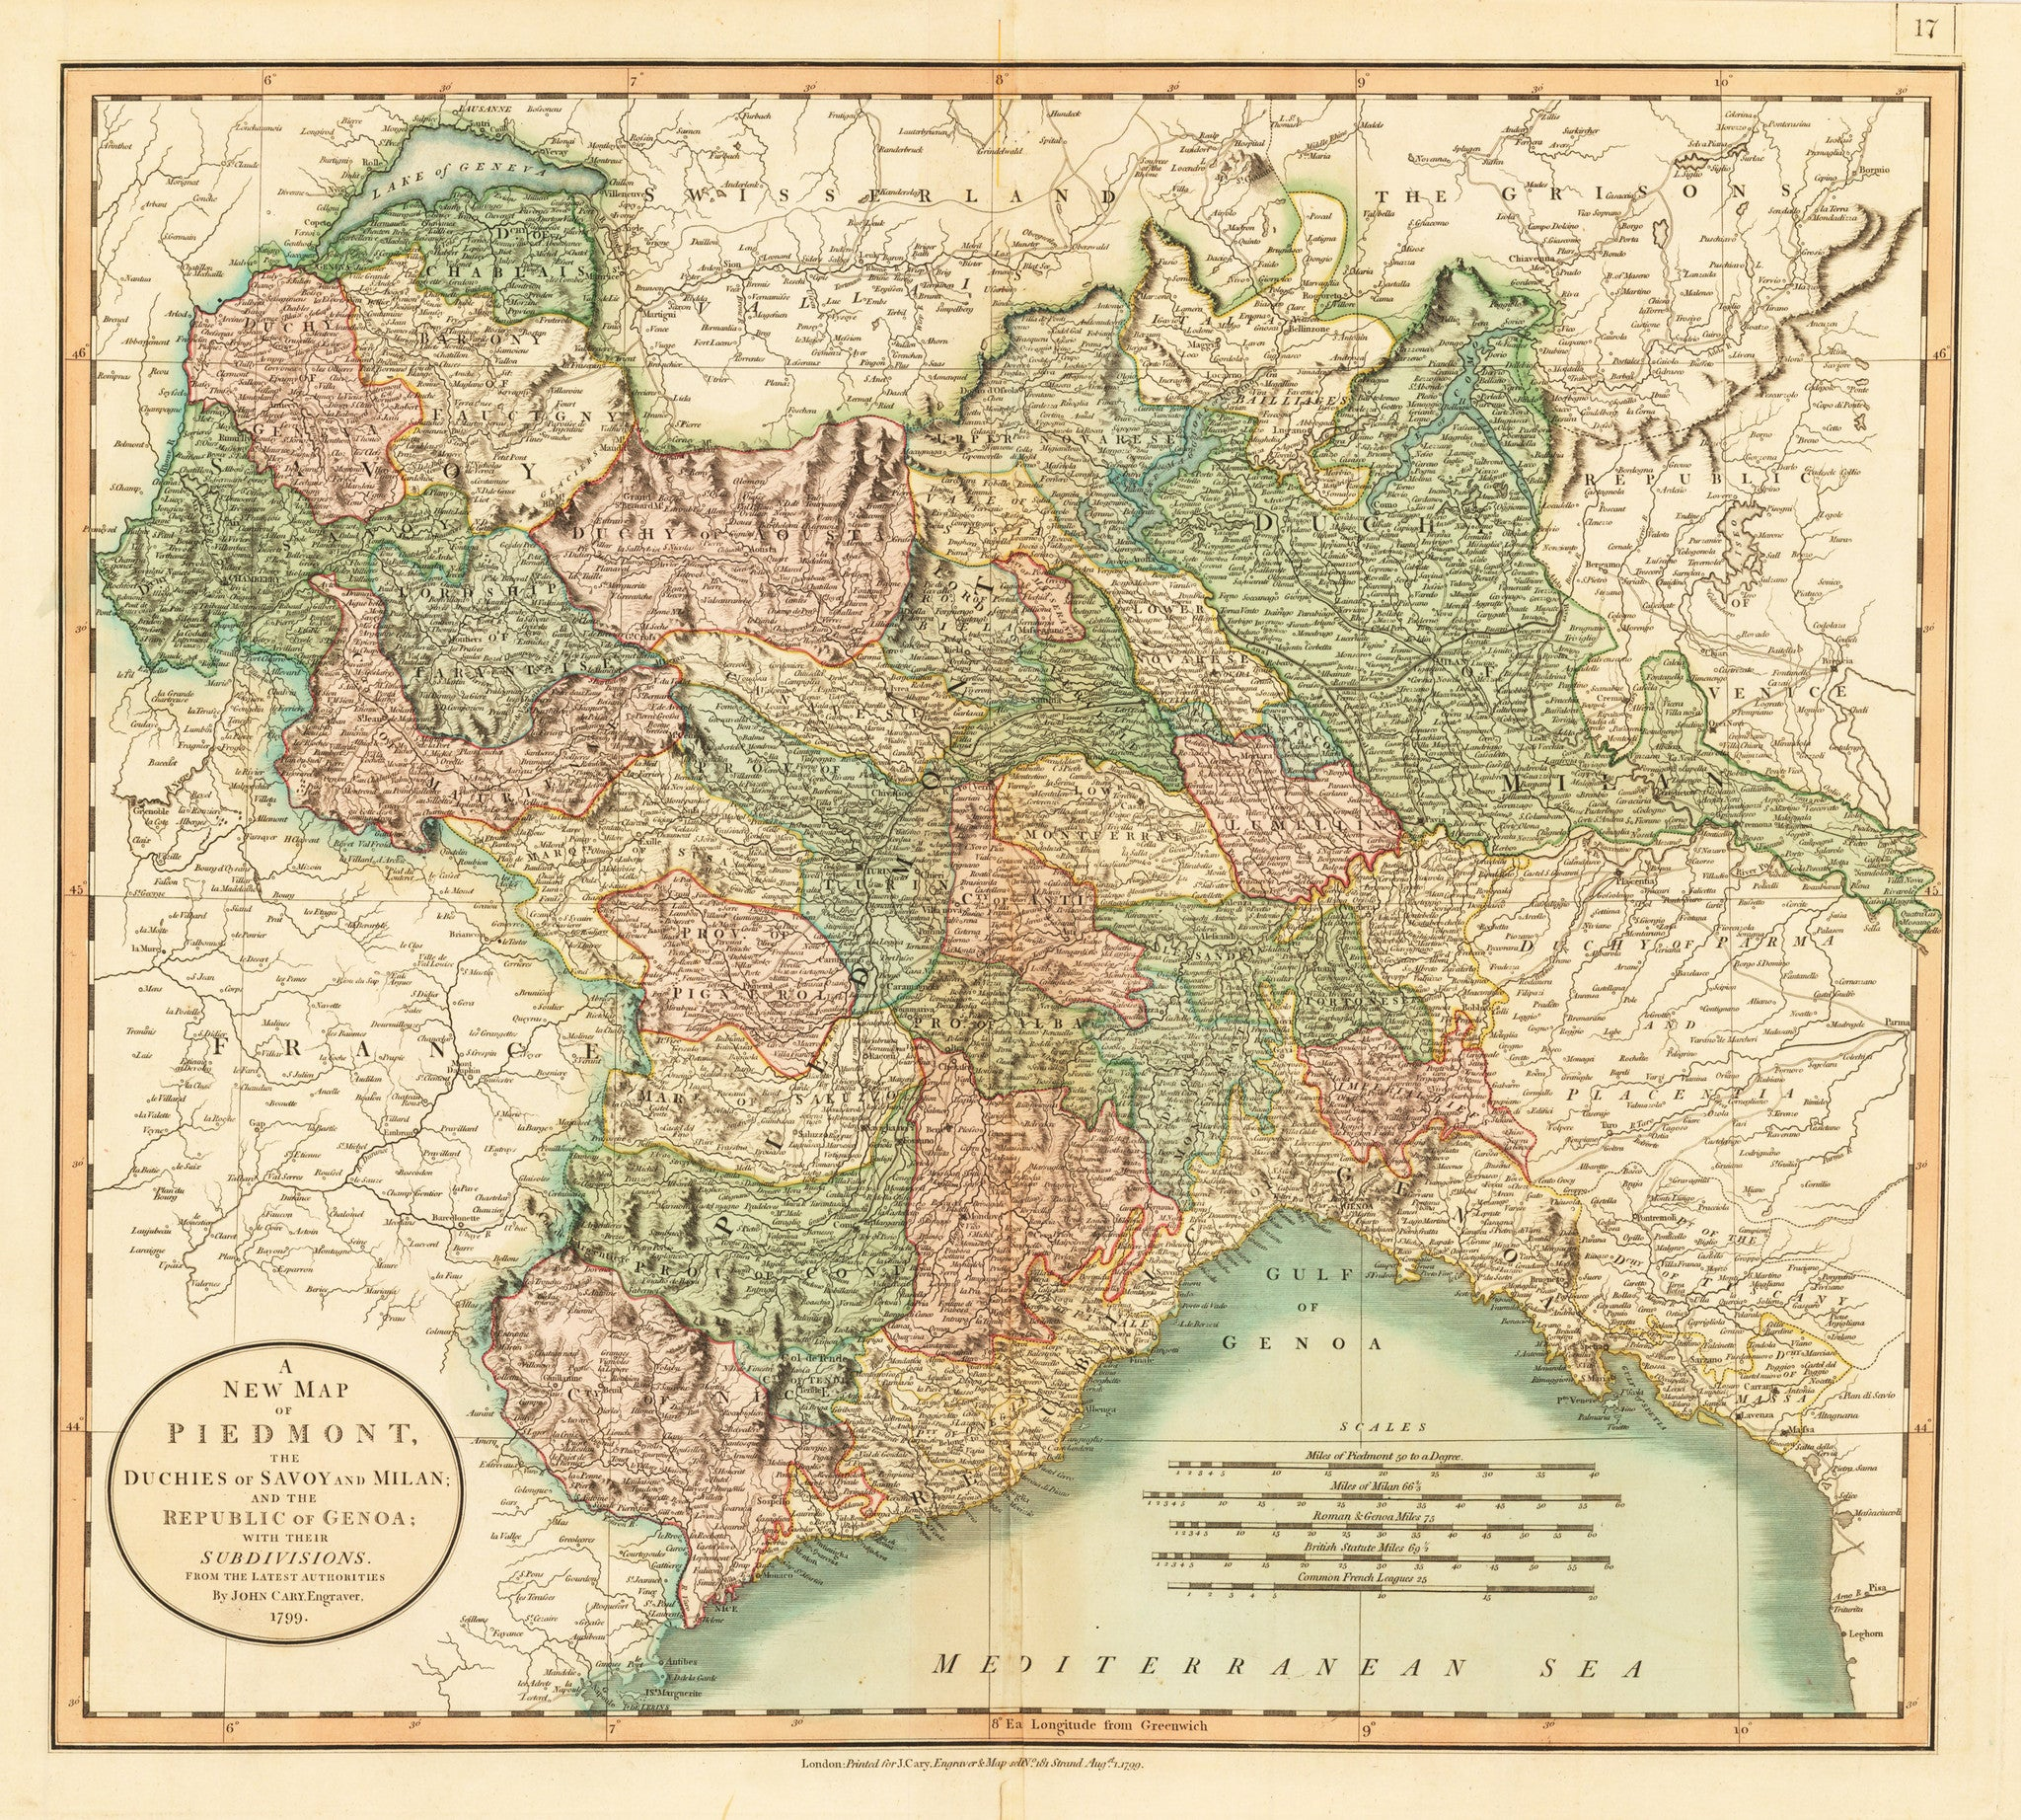 A New Map of Piedmont, the Duchies of Savoy and Milan and the Republic of Genoa: With Their Subdivisions From the Latest Authorities